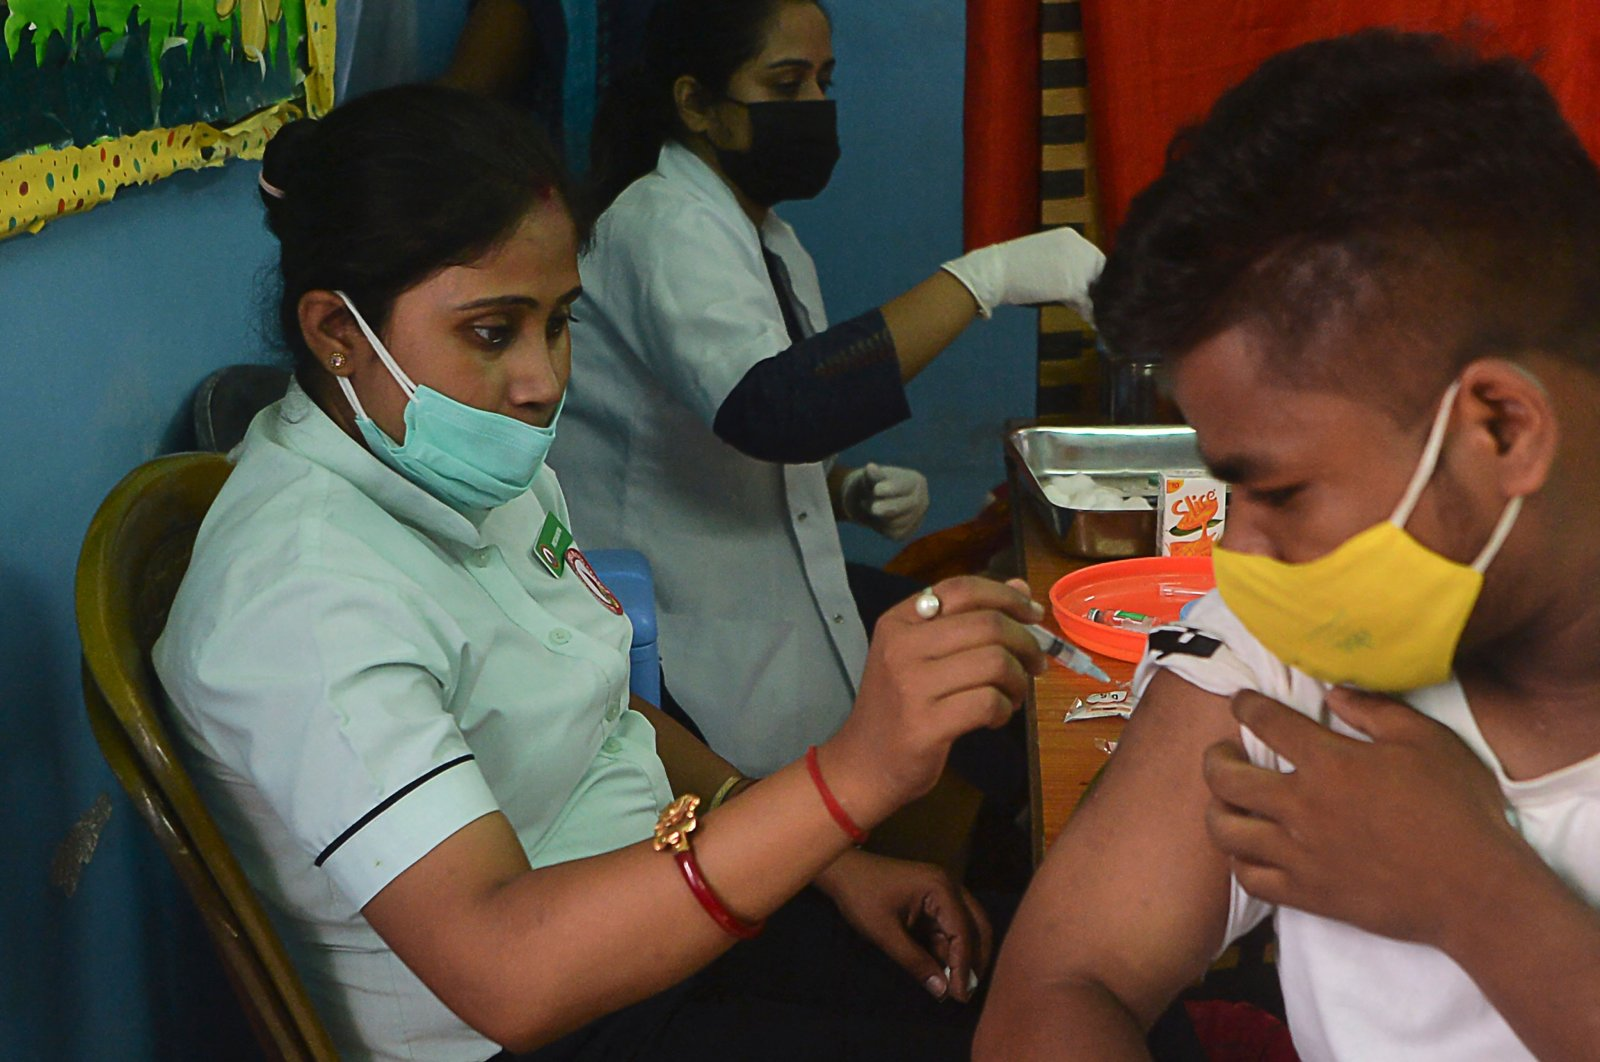 A healthcare worker inoculates a man against COVID-19 at the Bright Academy school in Siliguri, India, Aug. 7, 2021. (Photo by Diptendu DUTTA / AFP)